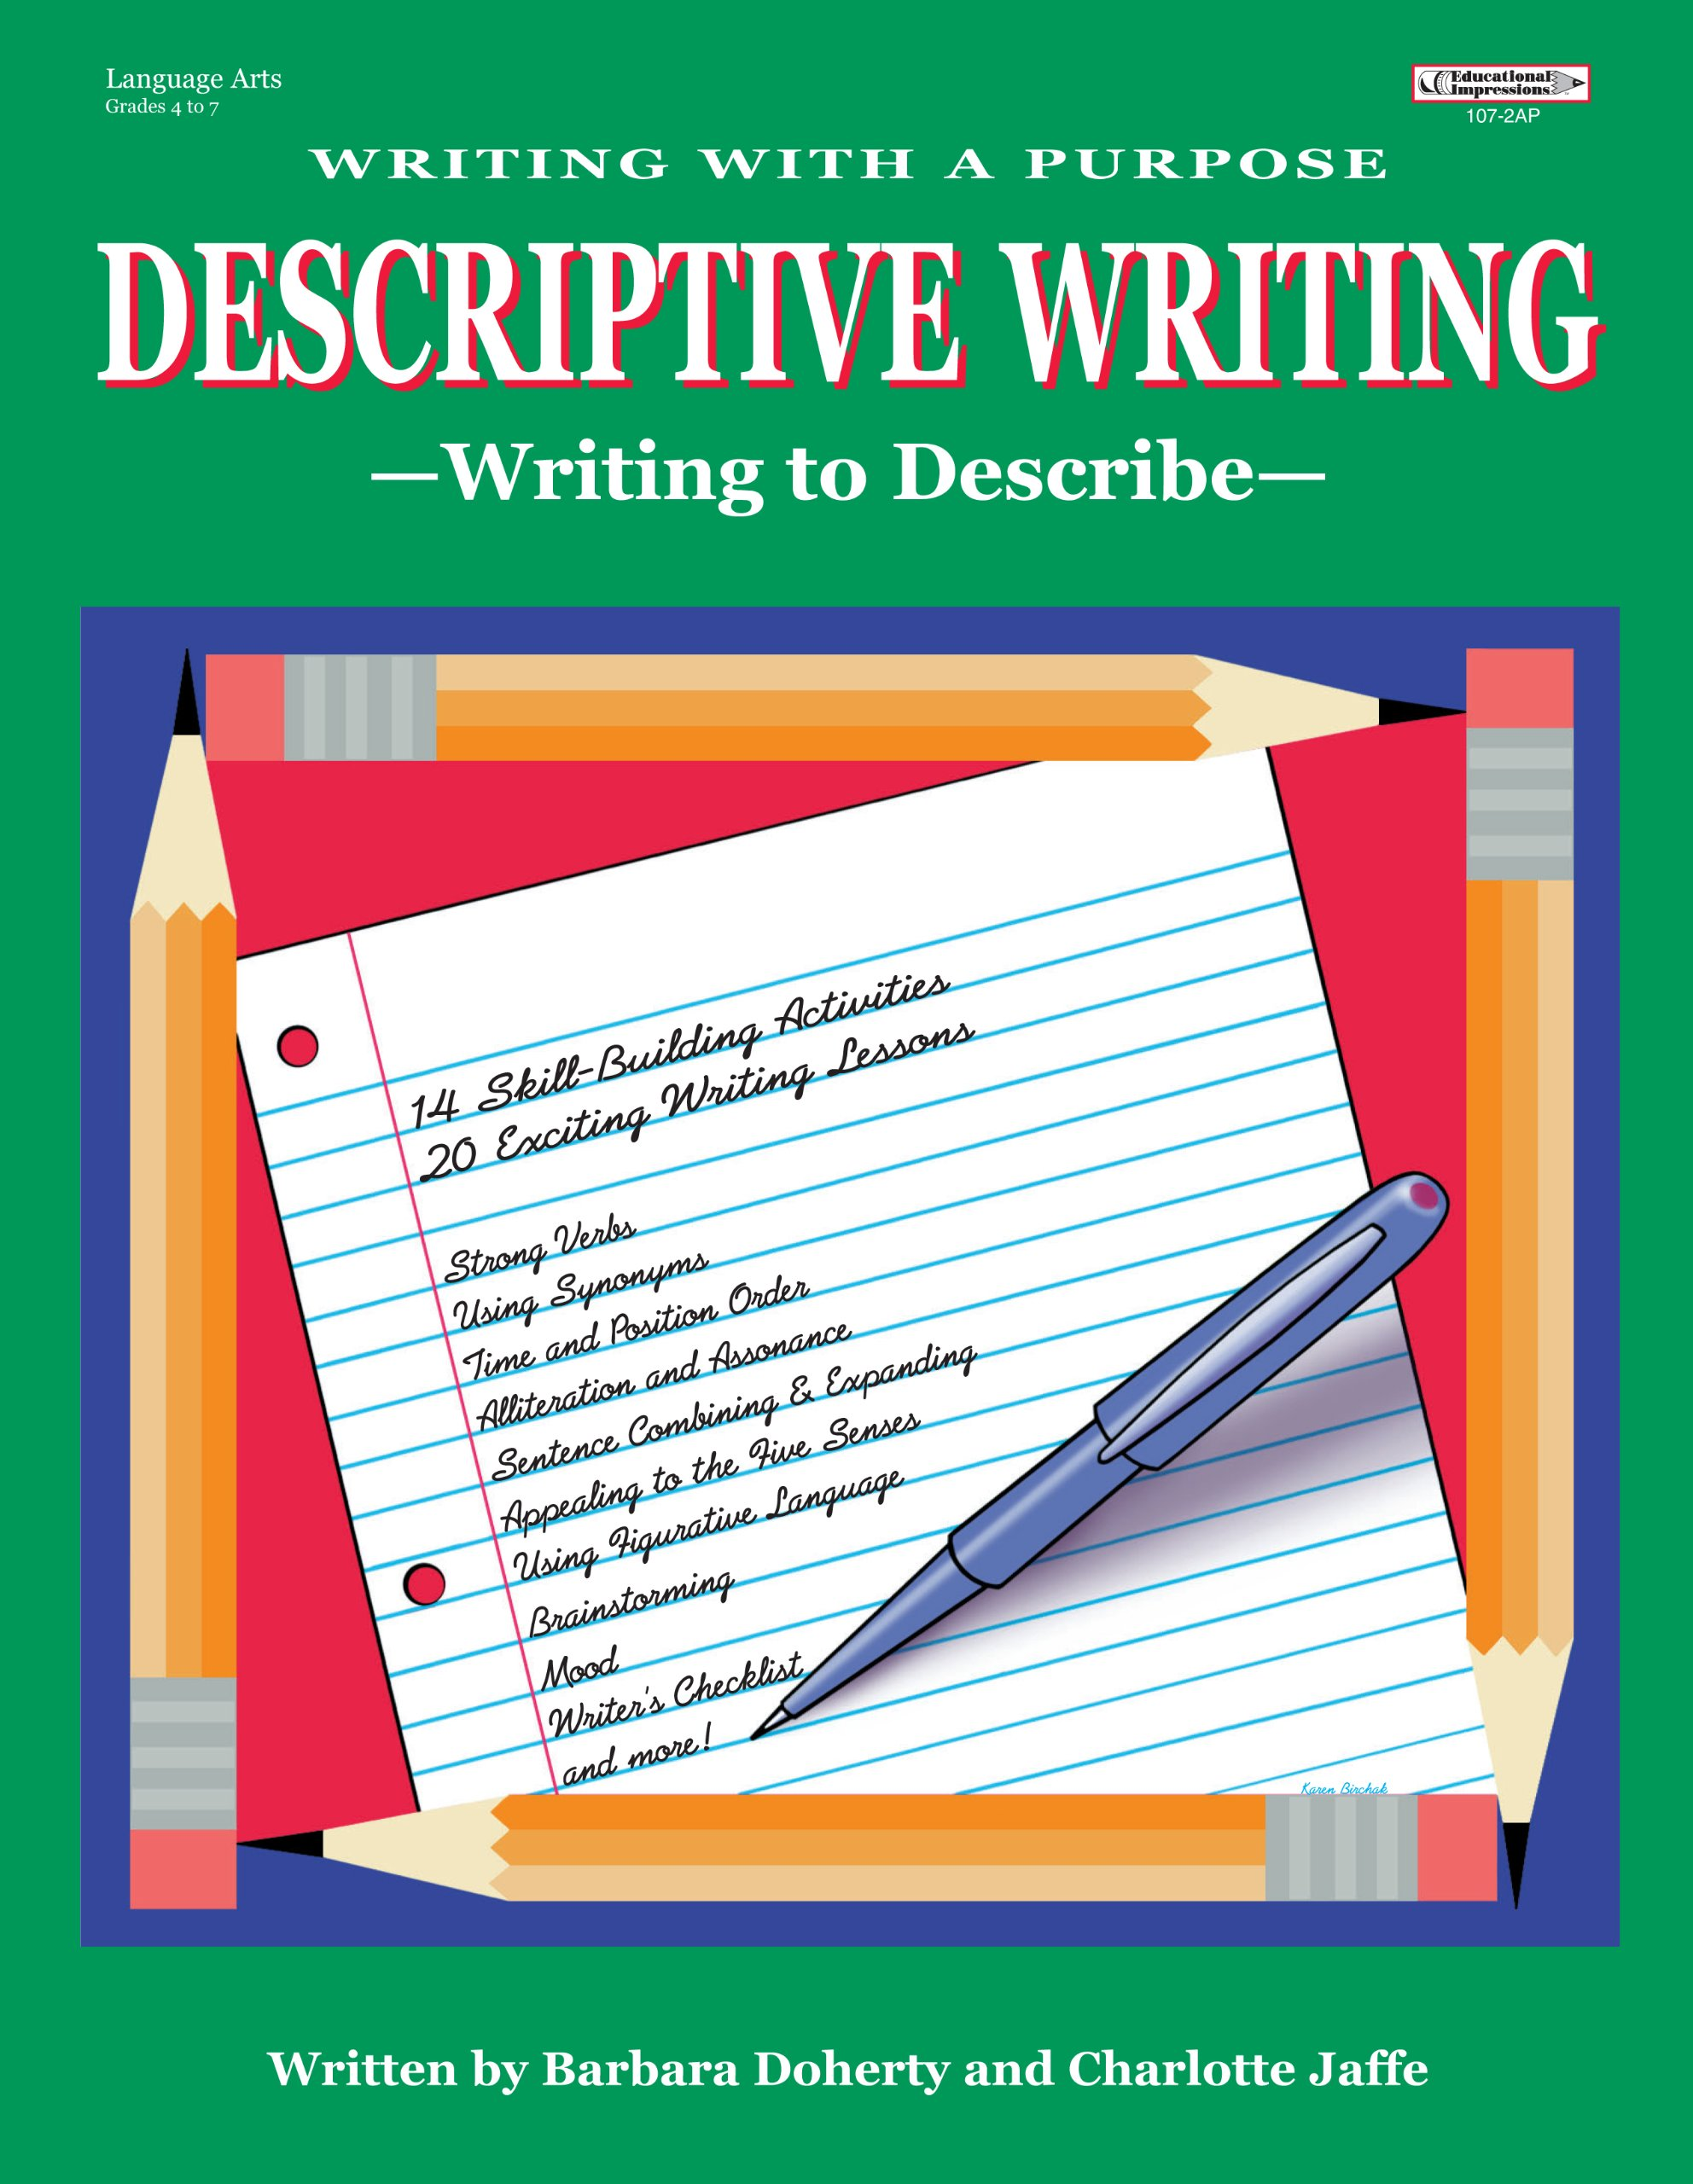 writing with a purpose descriptive writing charlotte jaffe